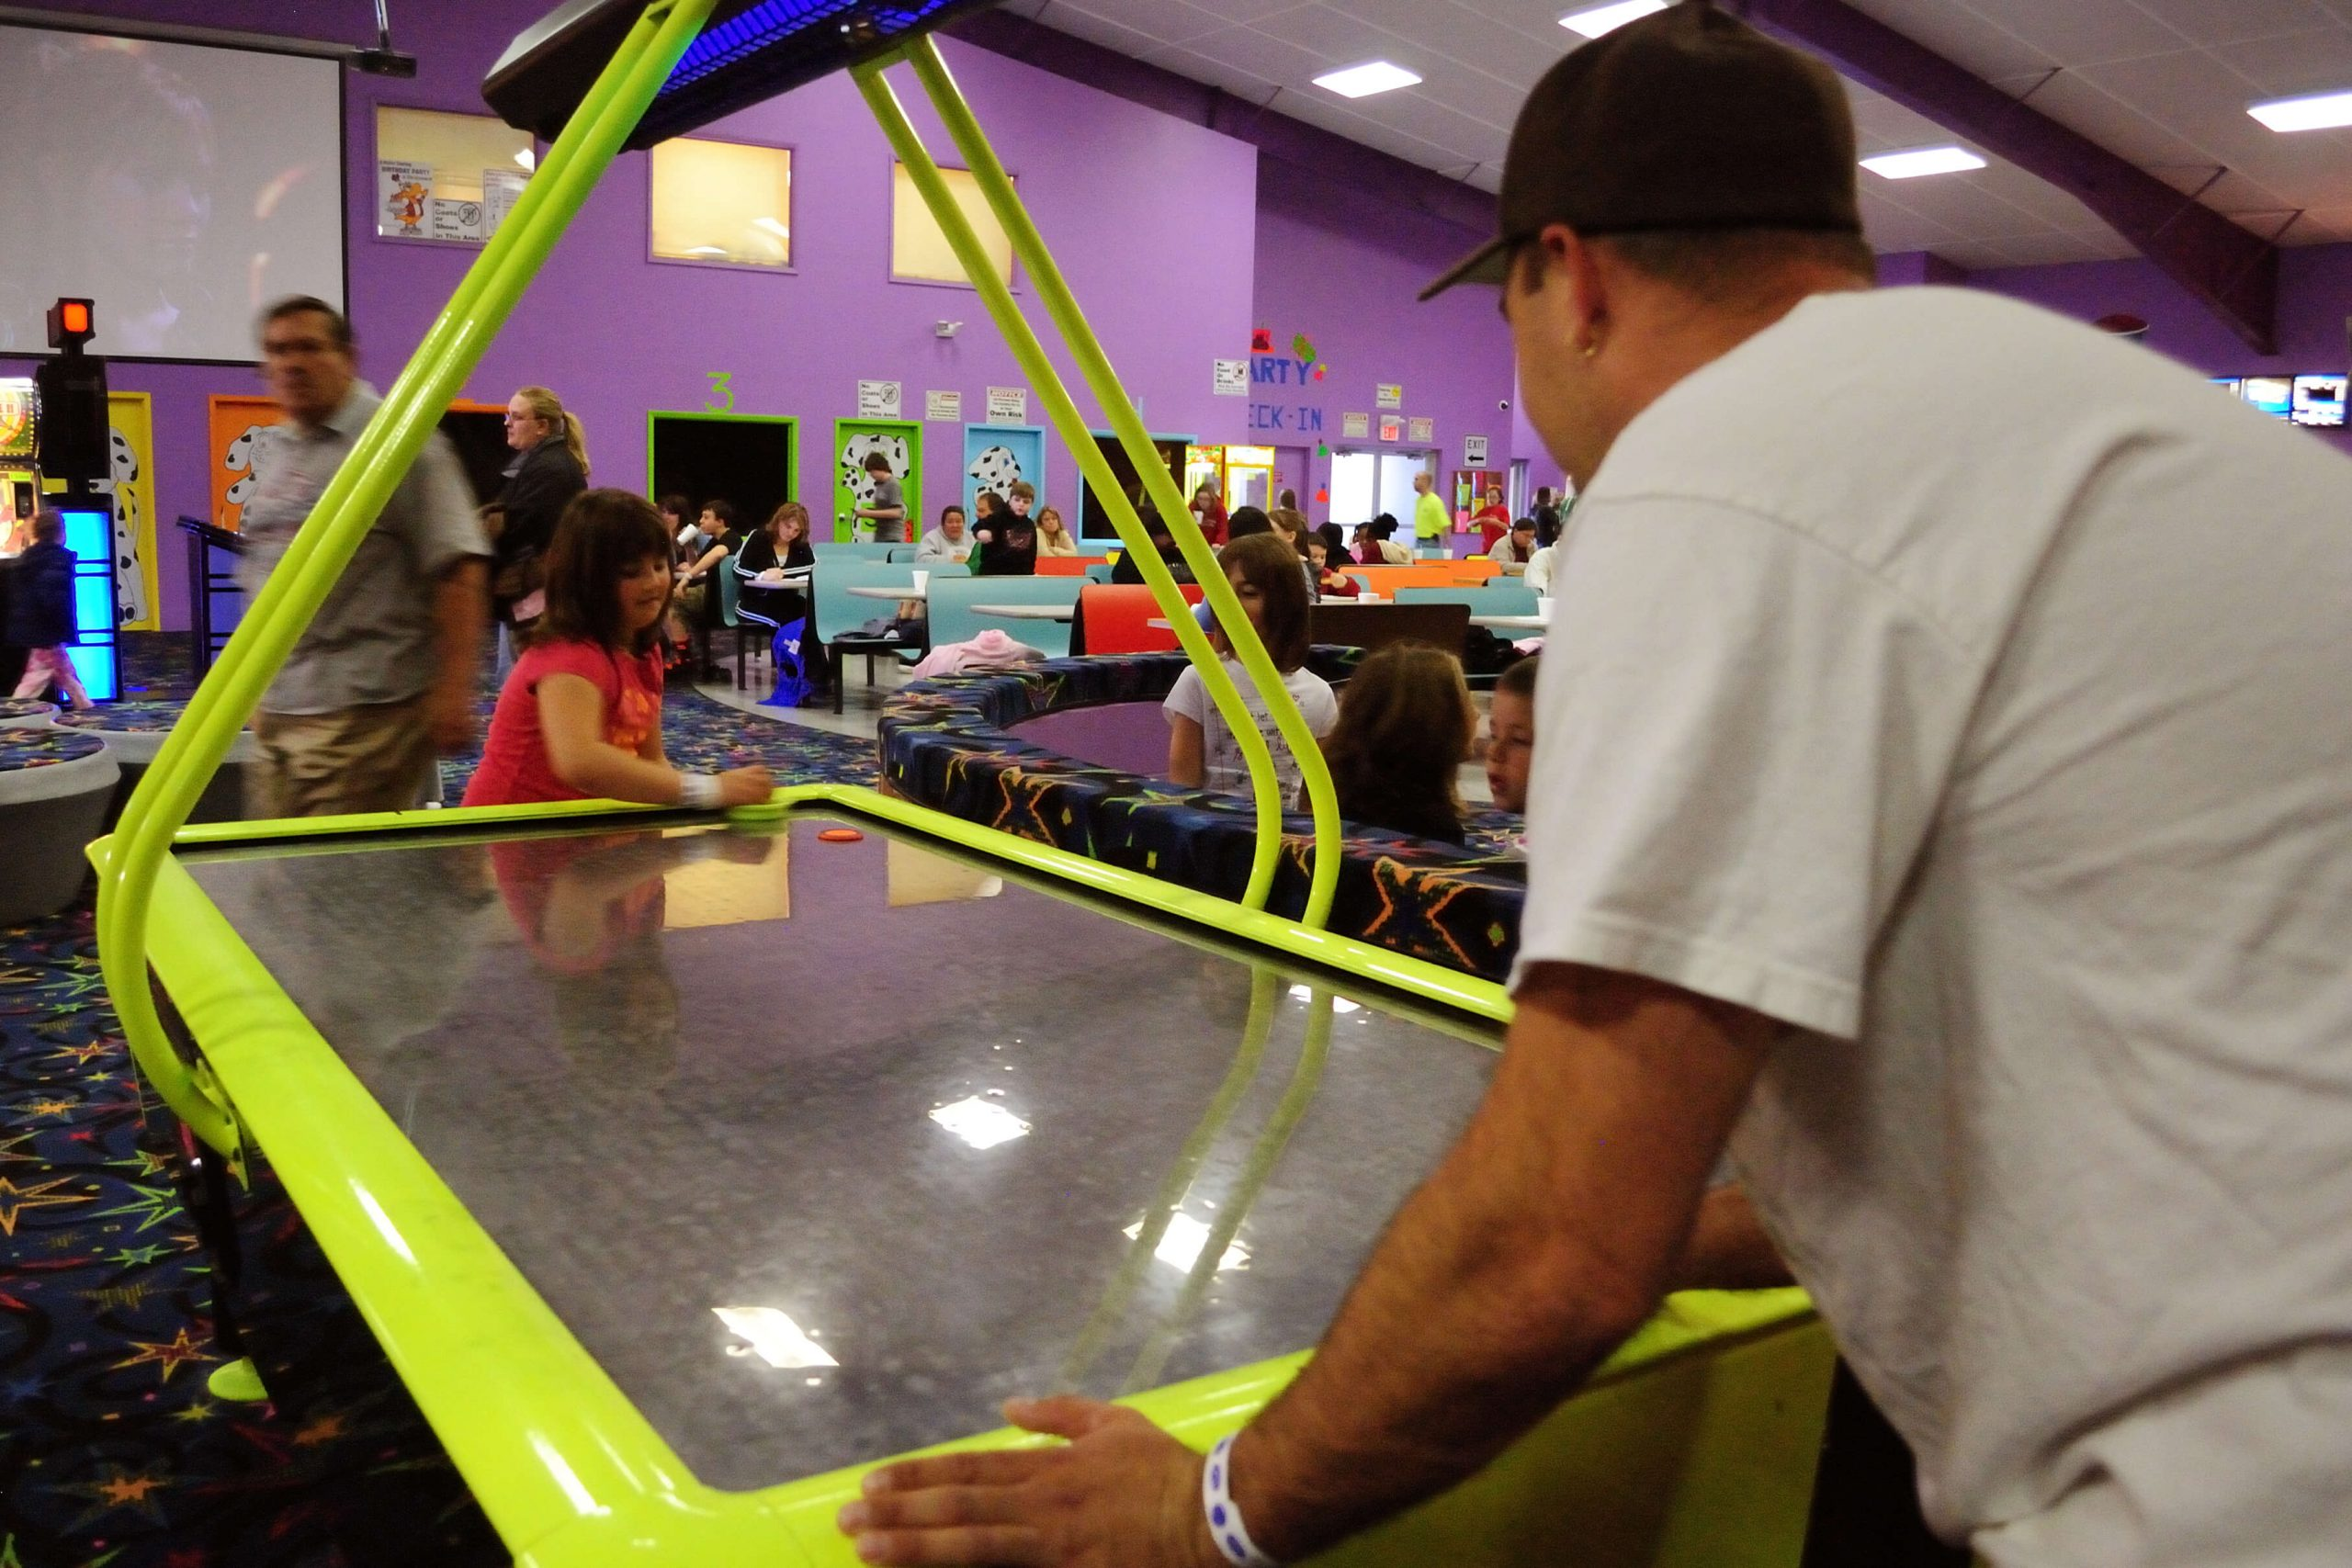 Arcade Games, Tokens, Video Games, Prizes, Air Hockey